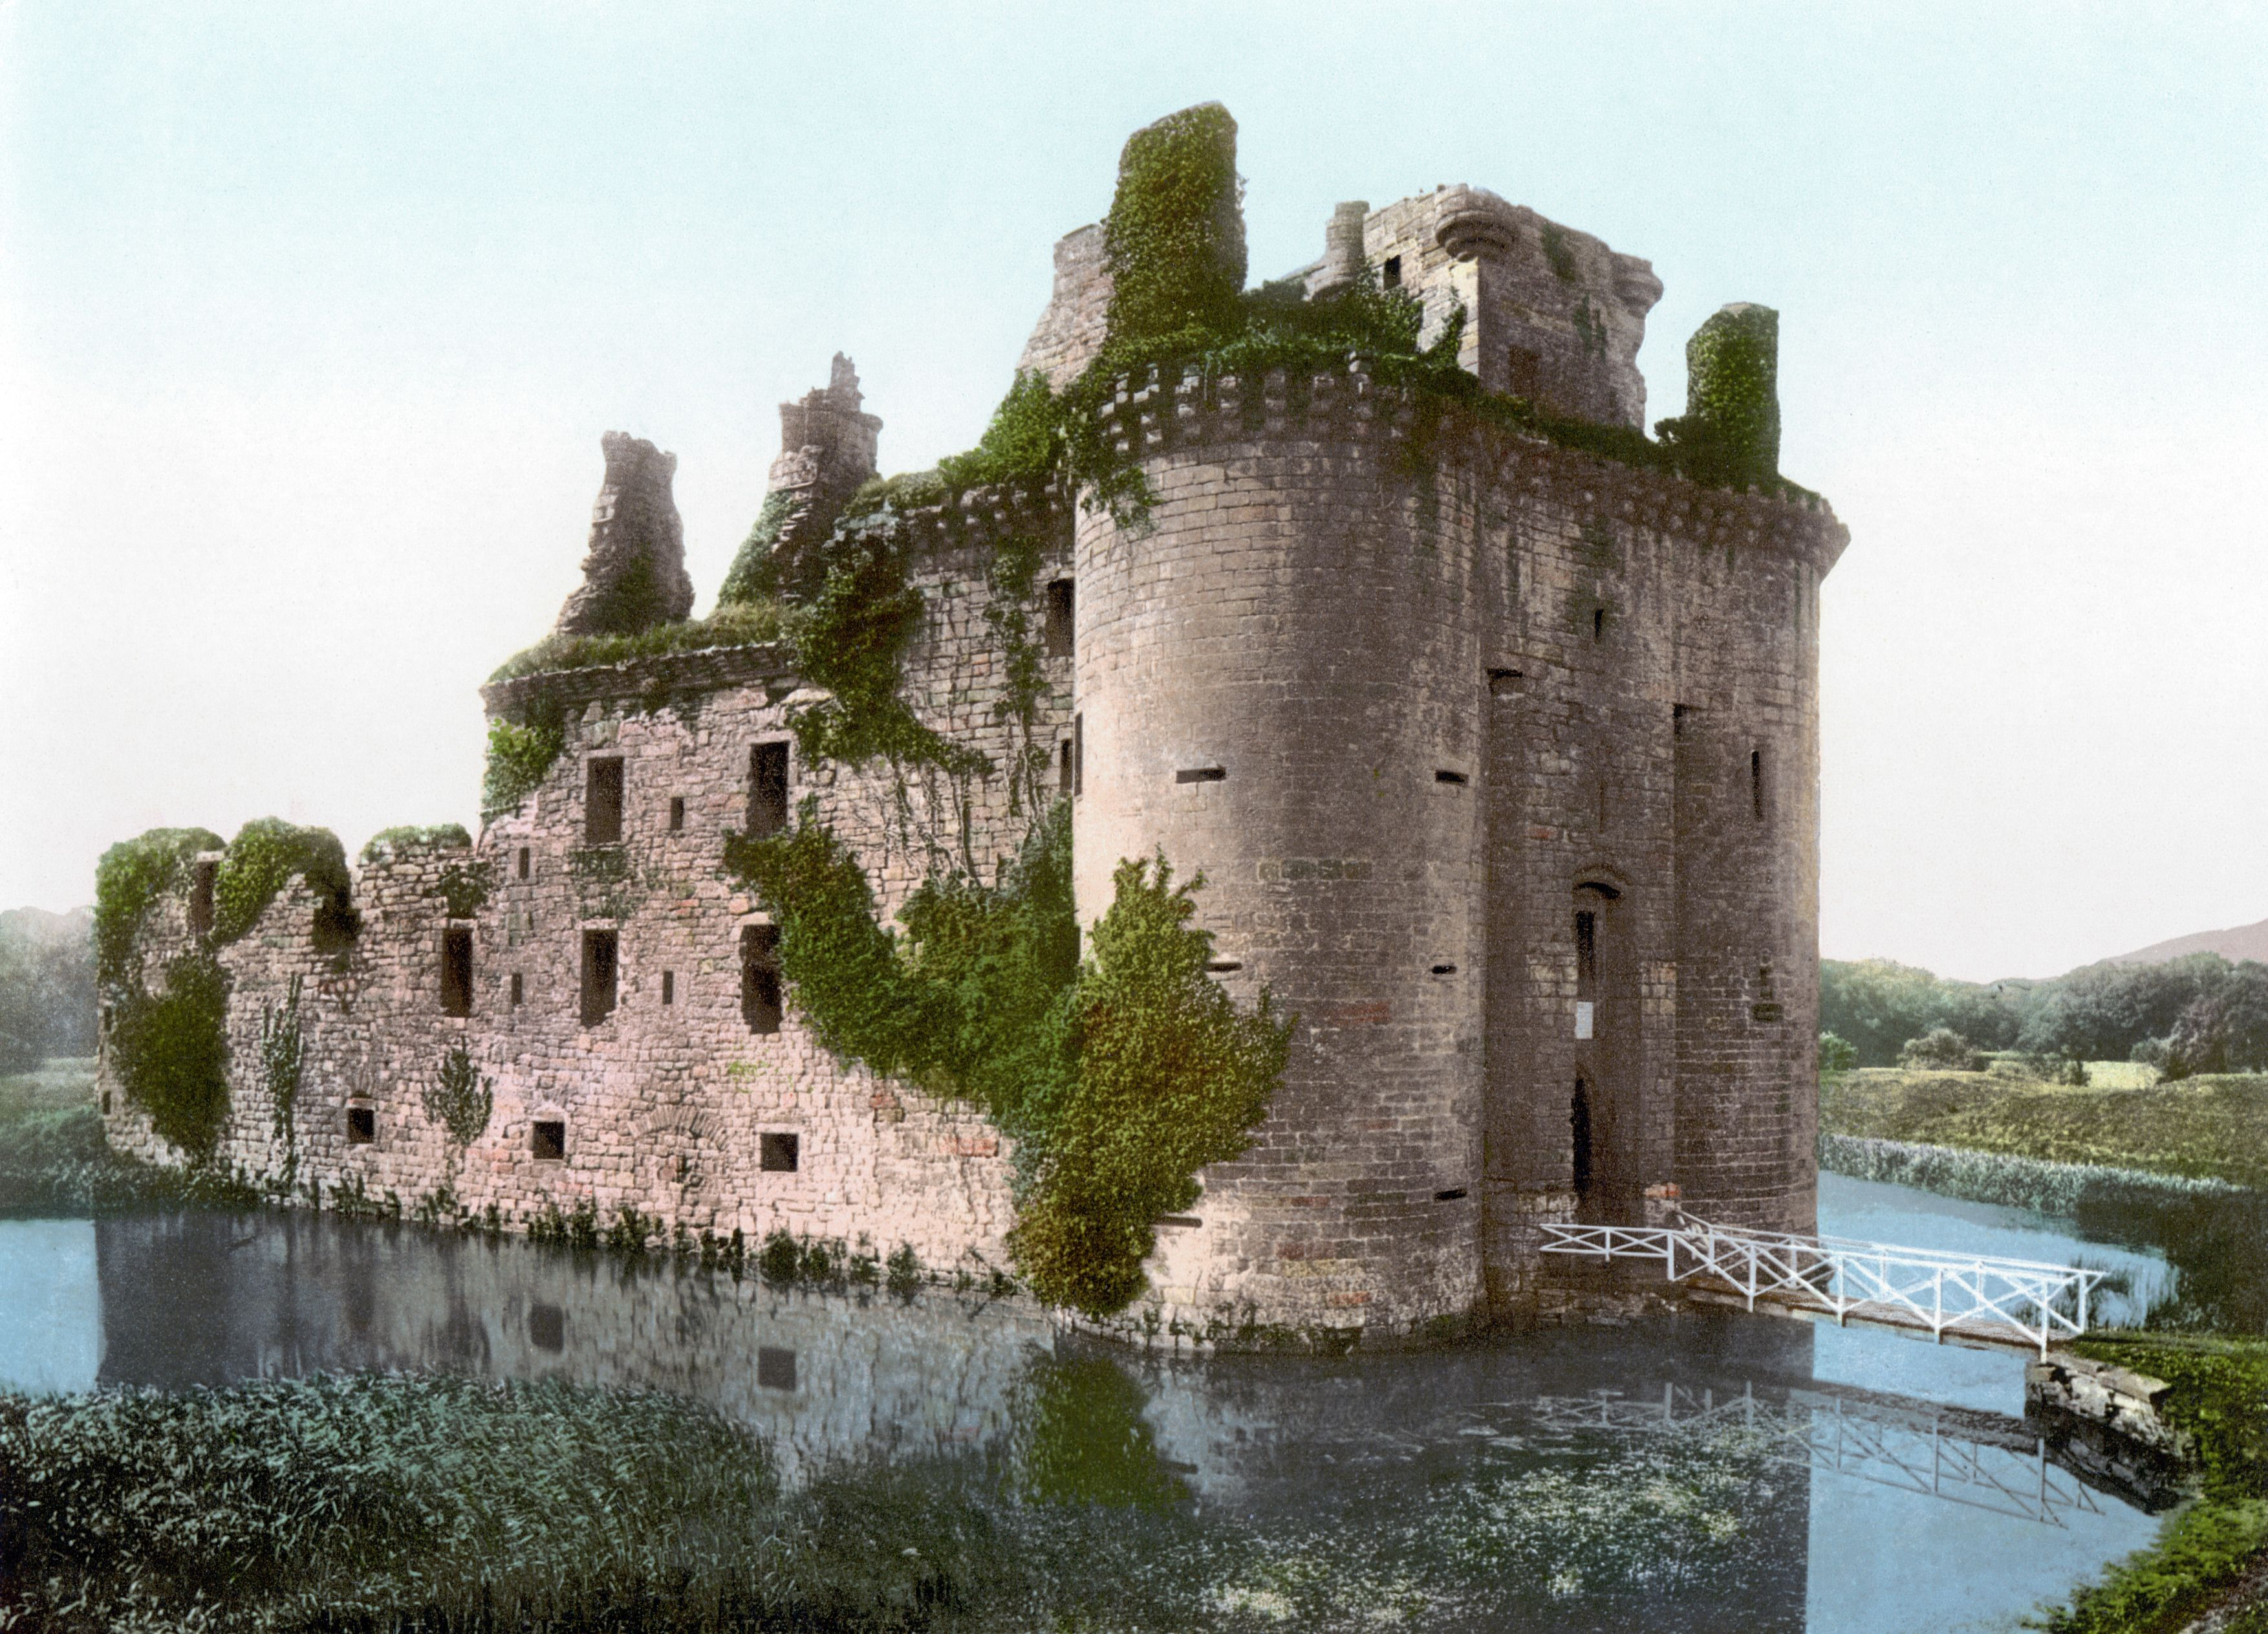 Caerlaverock Castle Is A Moated Triangular Castle First Built In The